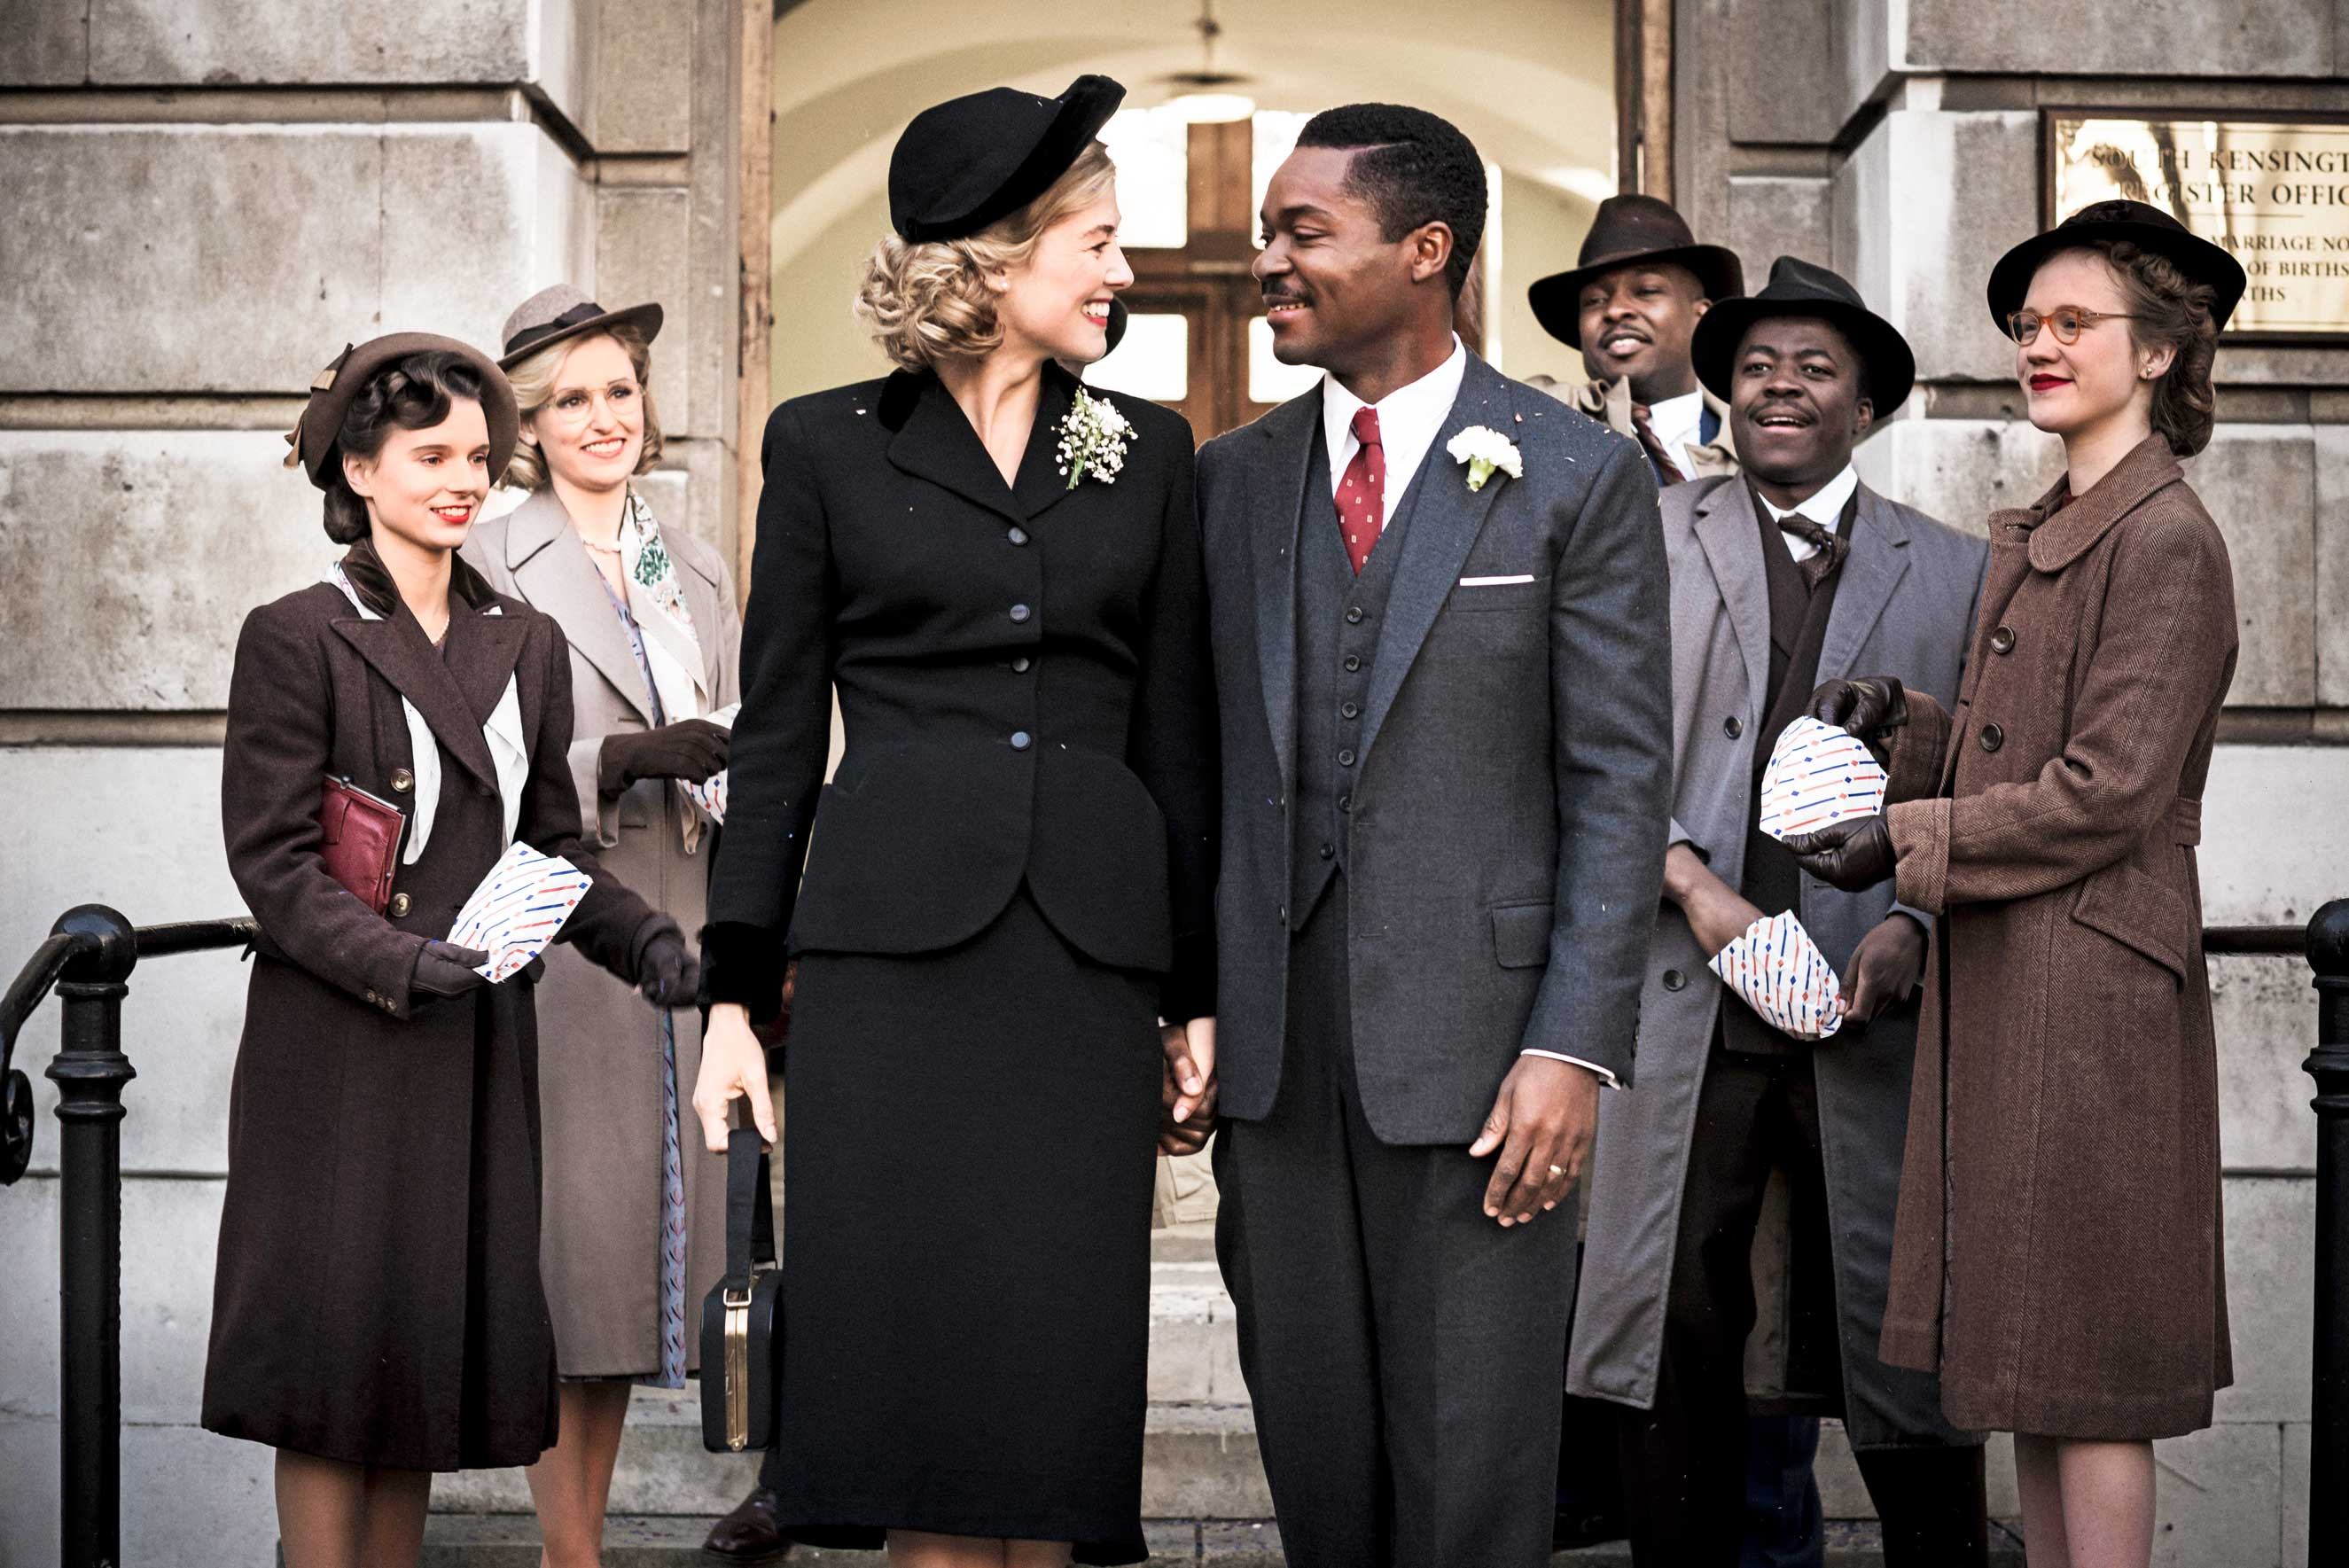 Pike and Oyelowo in AUnited Kingdom, the true story of an interracial marriage